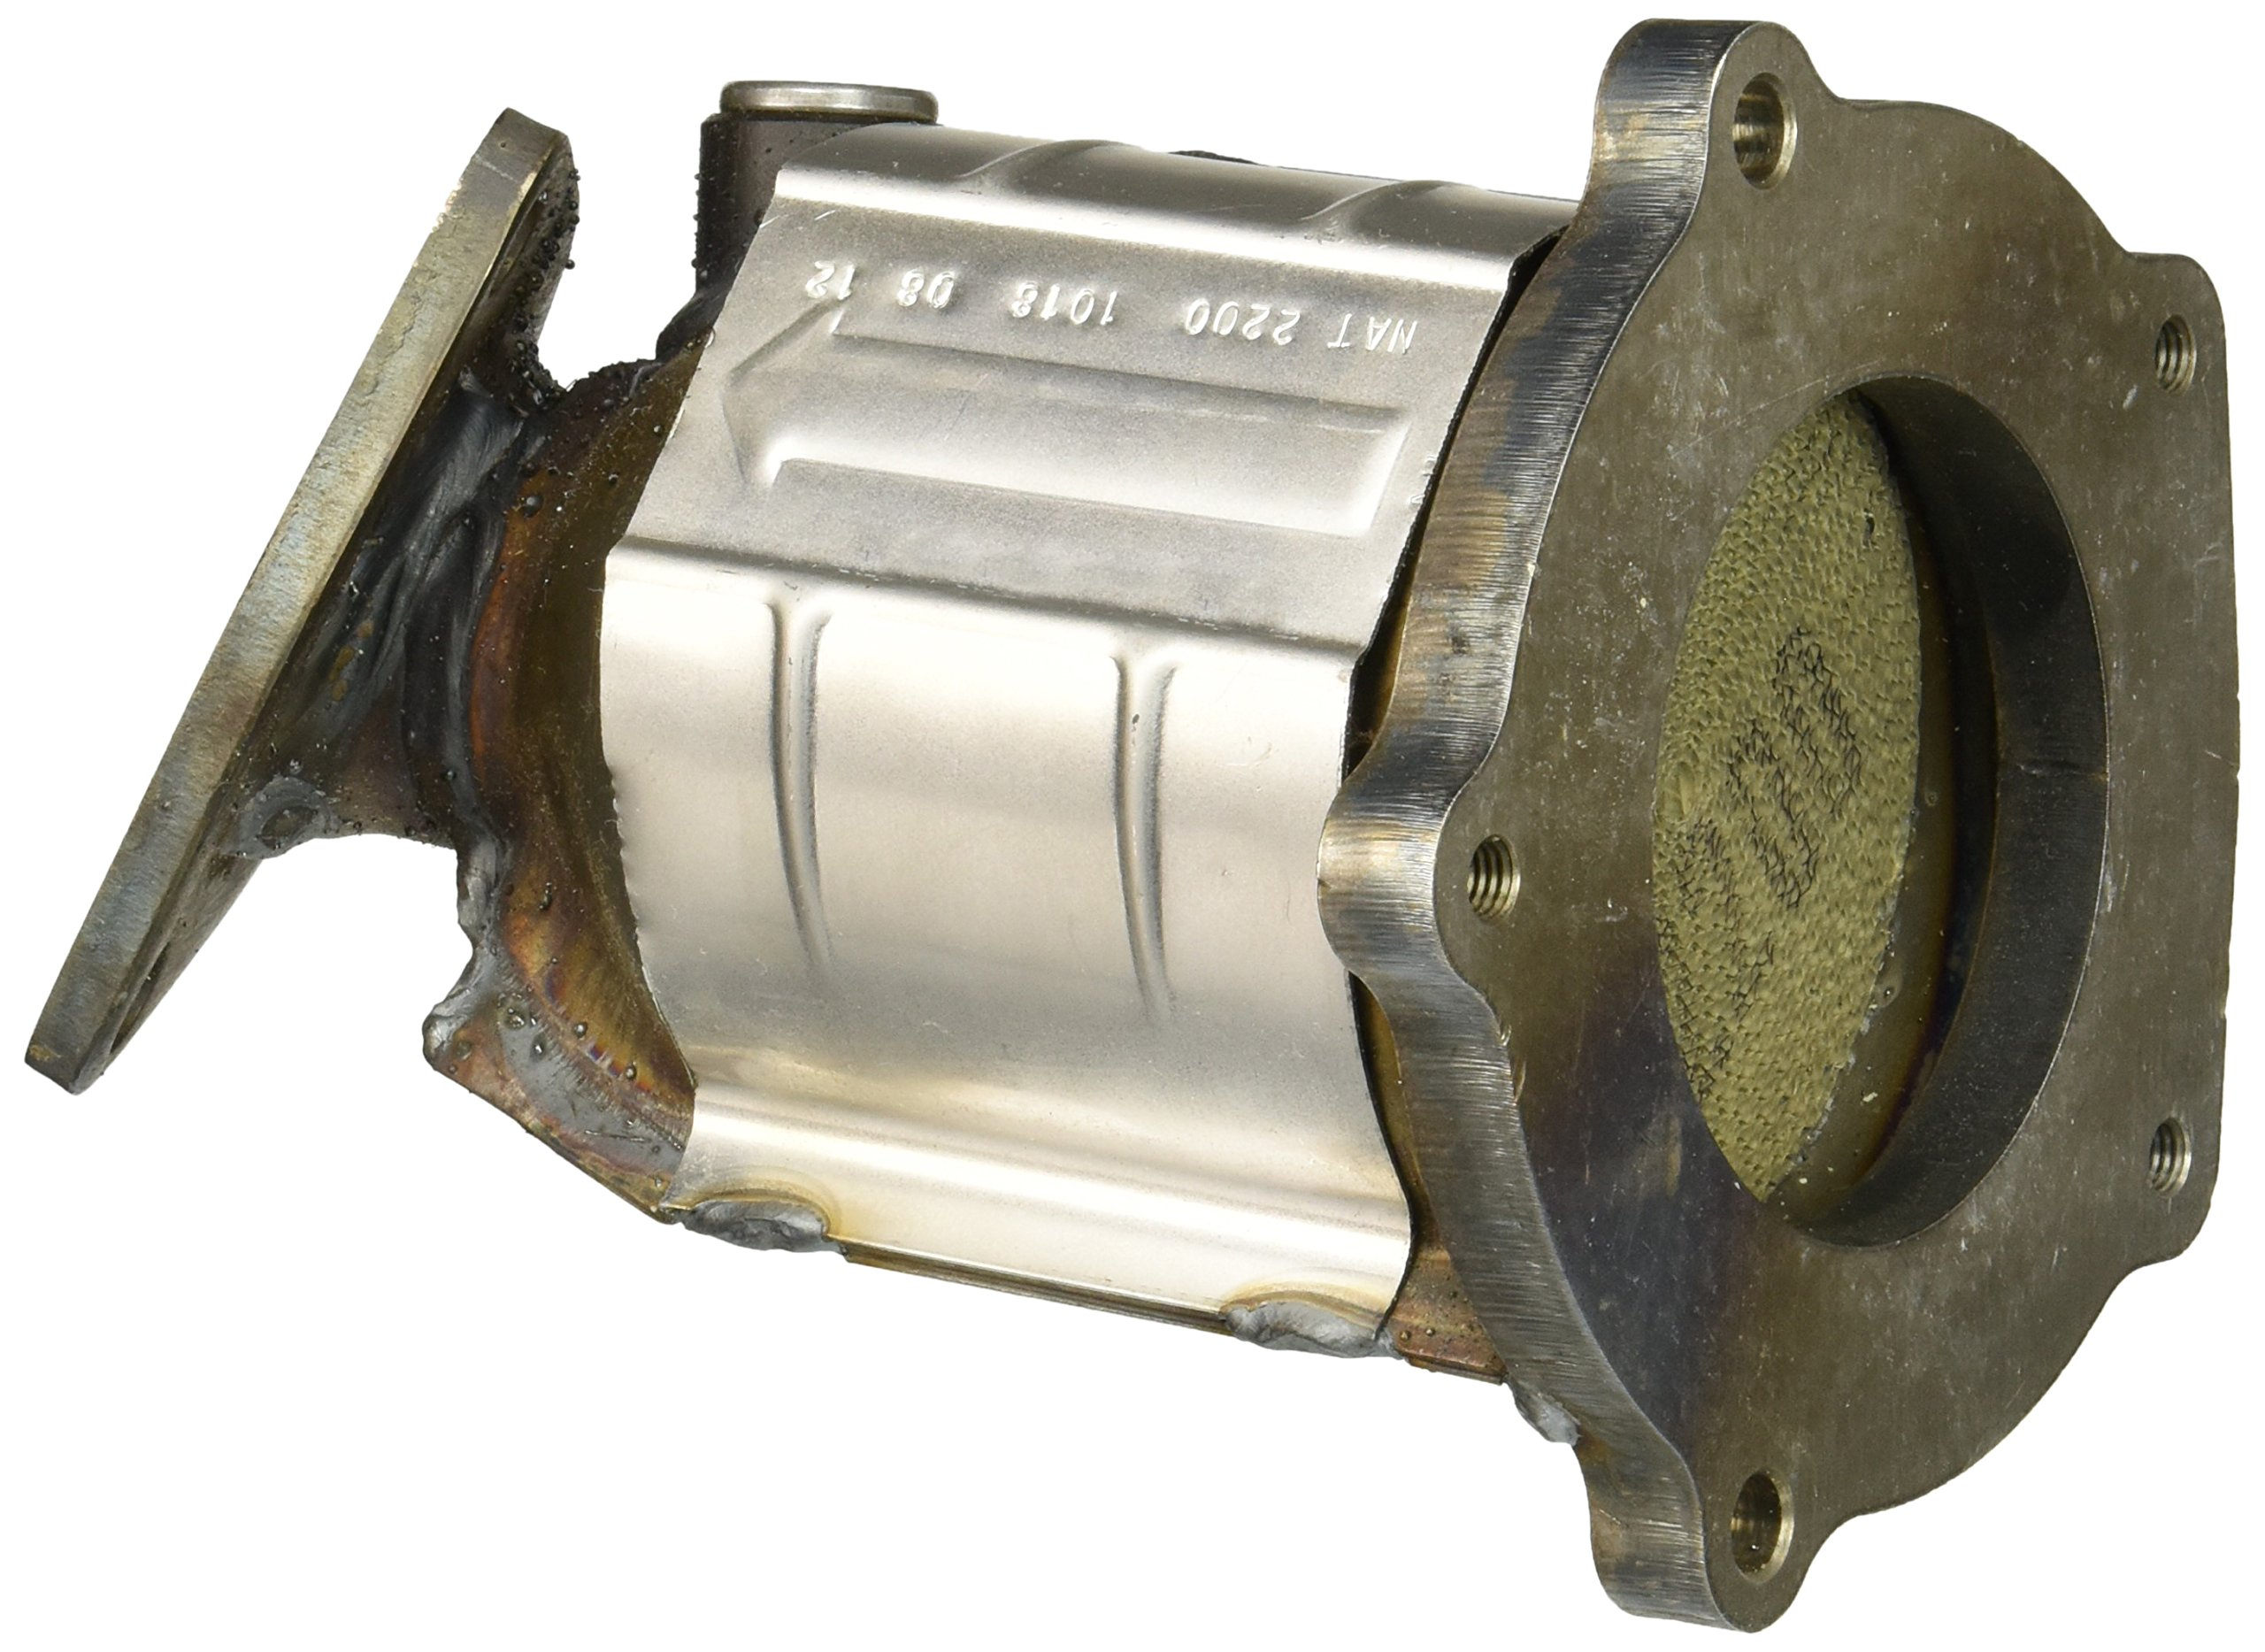 Catalytic Converter Prices >> Cheap Exhaust Catalytic Converter Prices Find Exhaust Catalytic